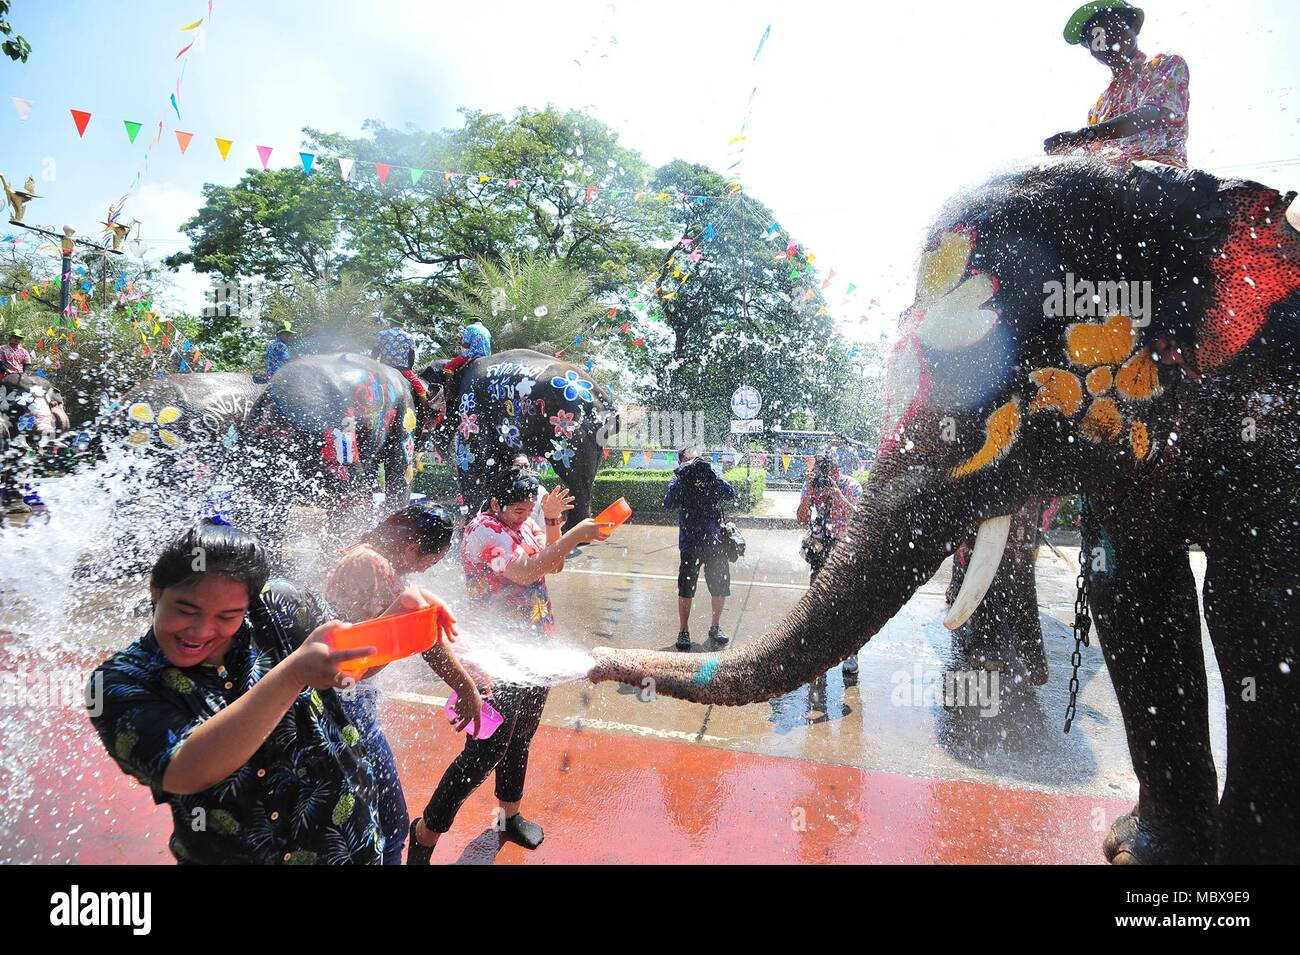 Bangkok, Thailand. 11th Apr, 2018. Elephants spray water on tourists during a celebration for the upcoming Songkran festival in Ayutthaya, Thailand, April 11, 2018. Songkran, also known as the water festival, is celebrated in Thailand as the traditional New Year's day, which will start on April 13. Credit: Rachen Sageamsak/Xinhua/Alamy Live News - Stock Image